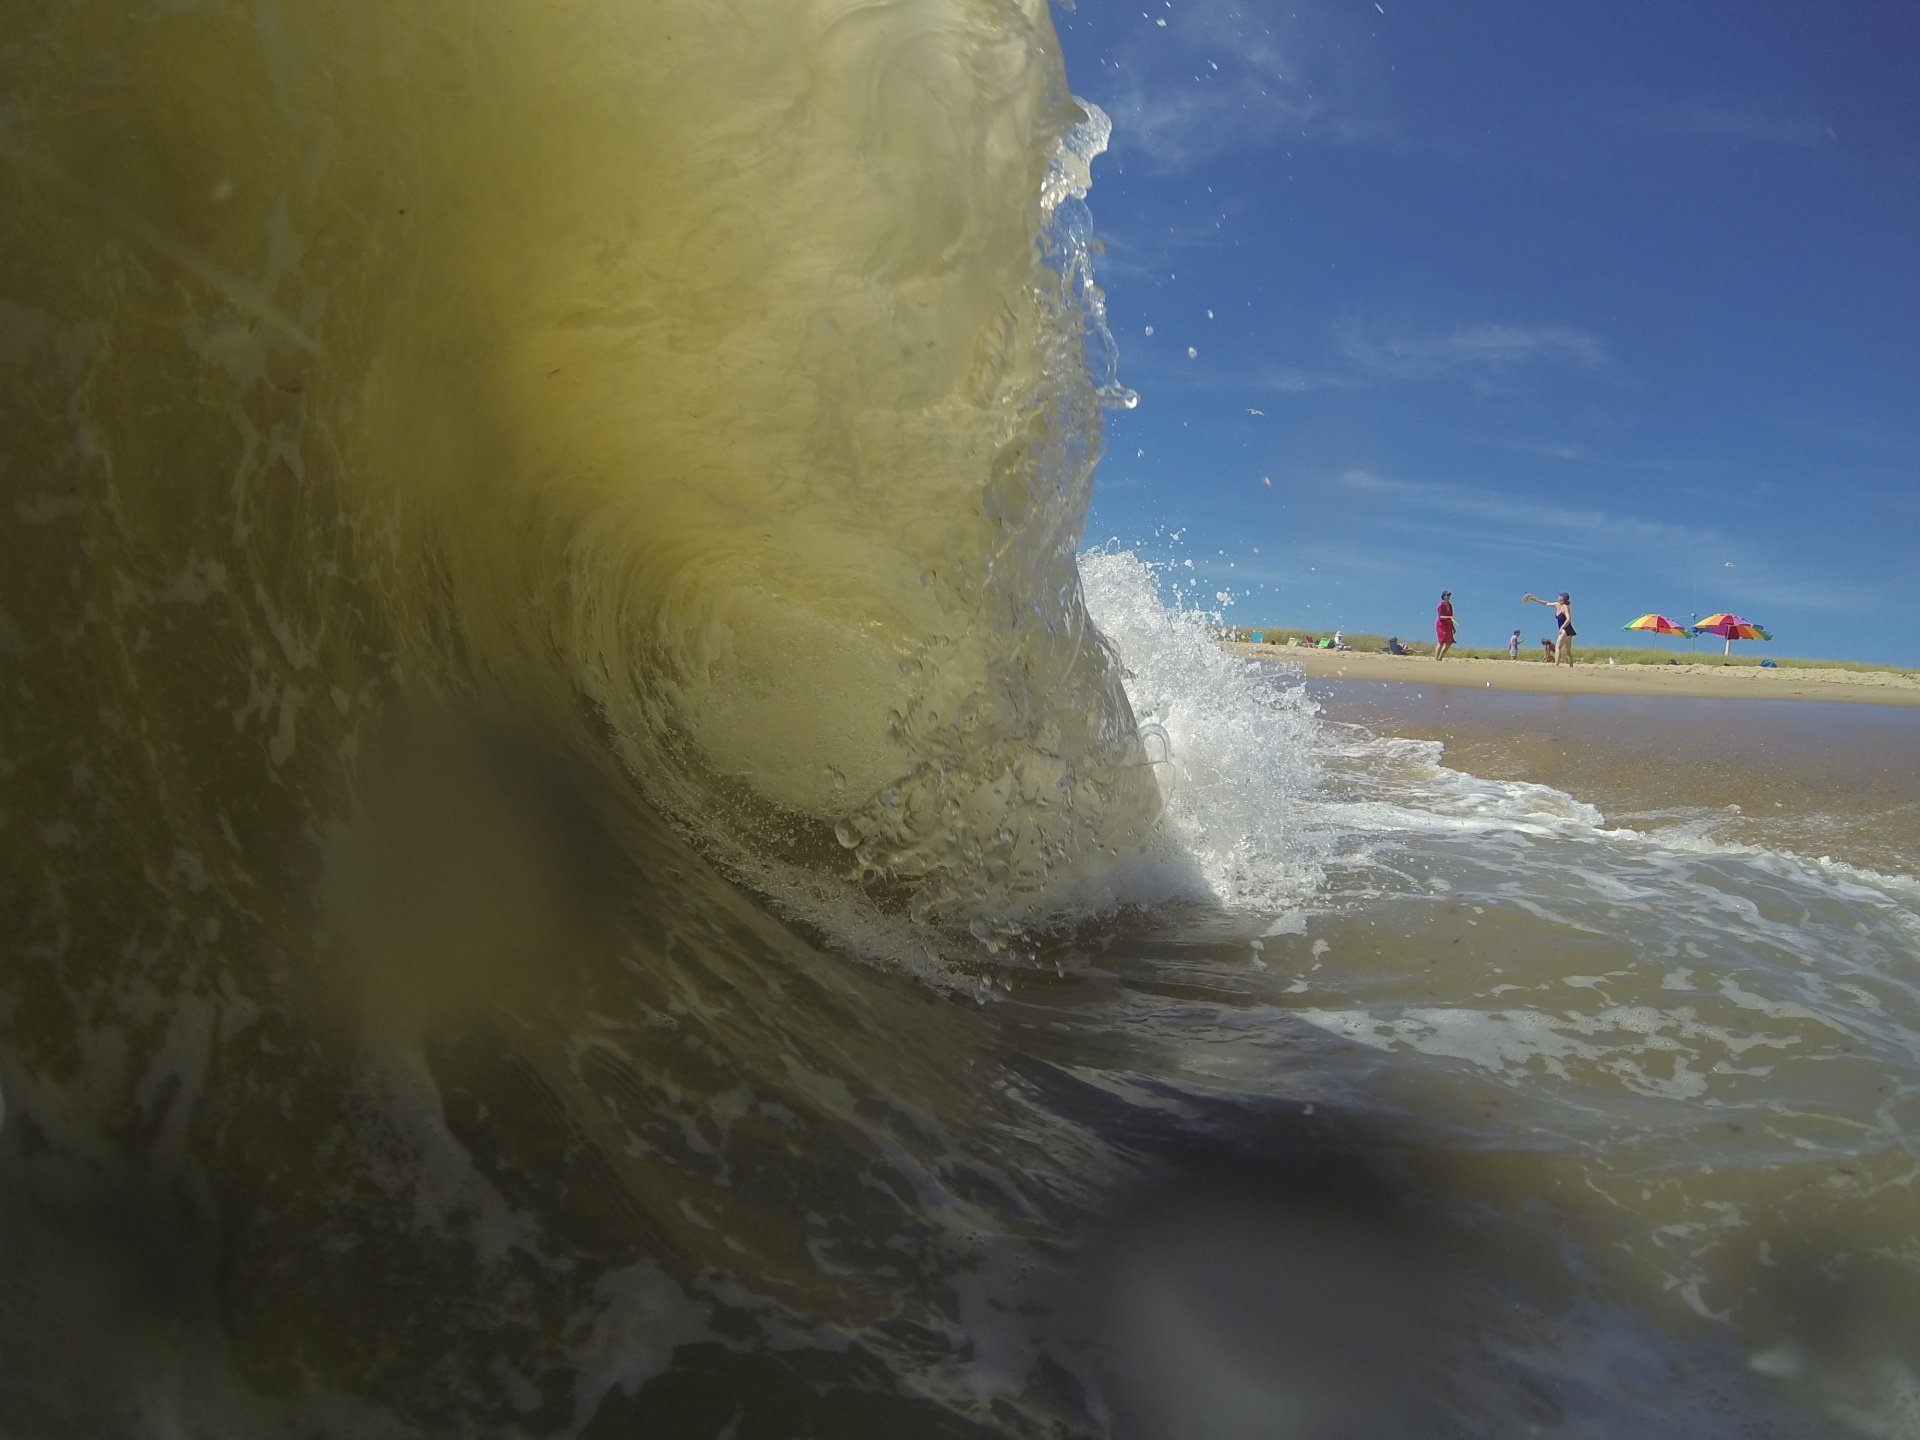 Daily Picture Live Surf Photography's photo of South Beach